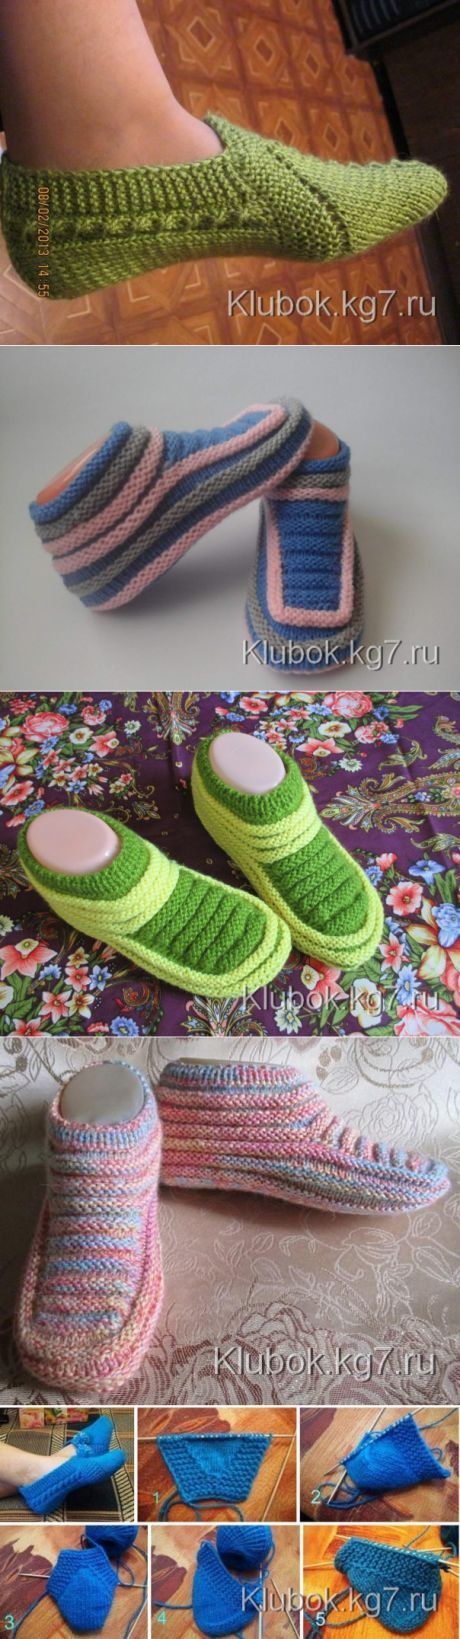 вязание | Pinterest | Stricken